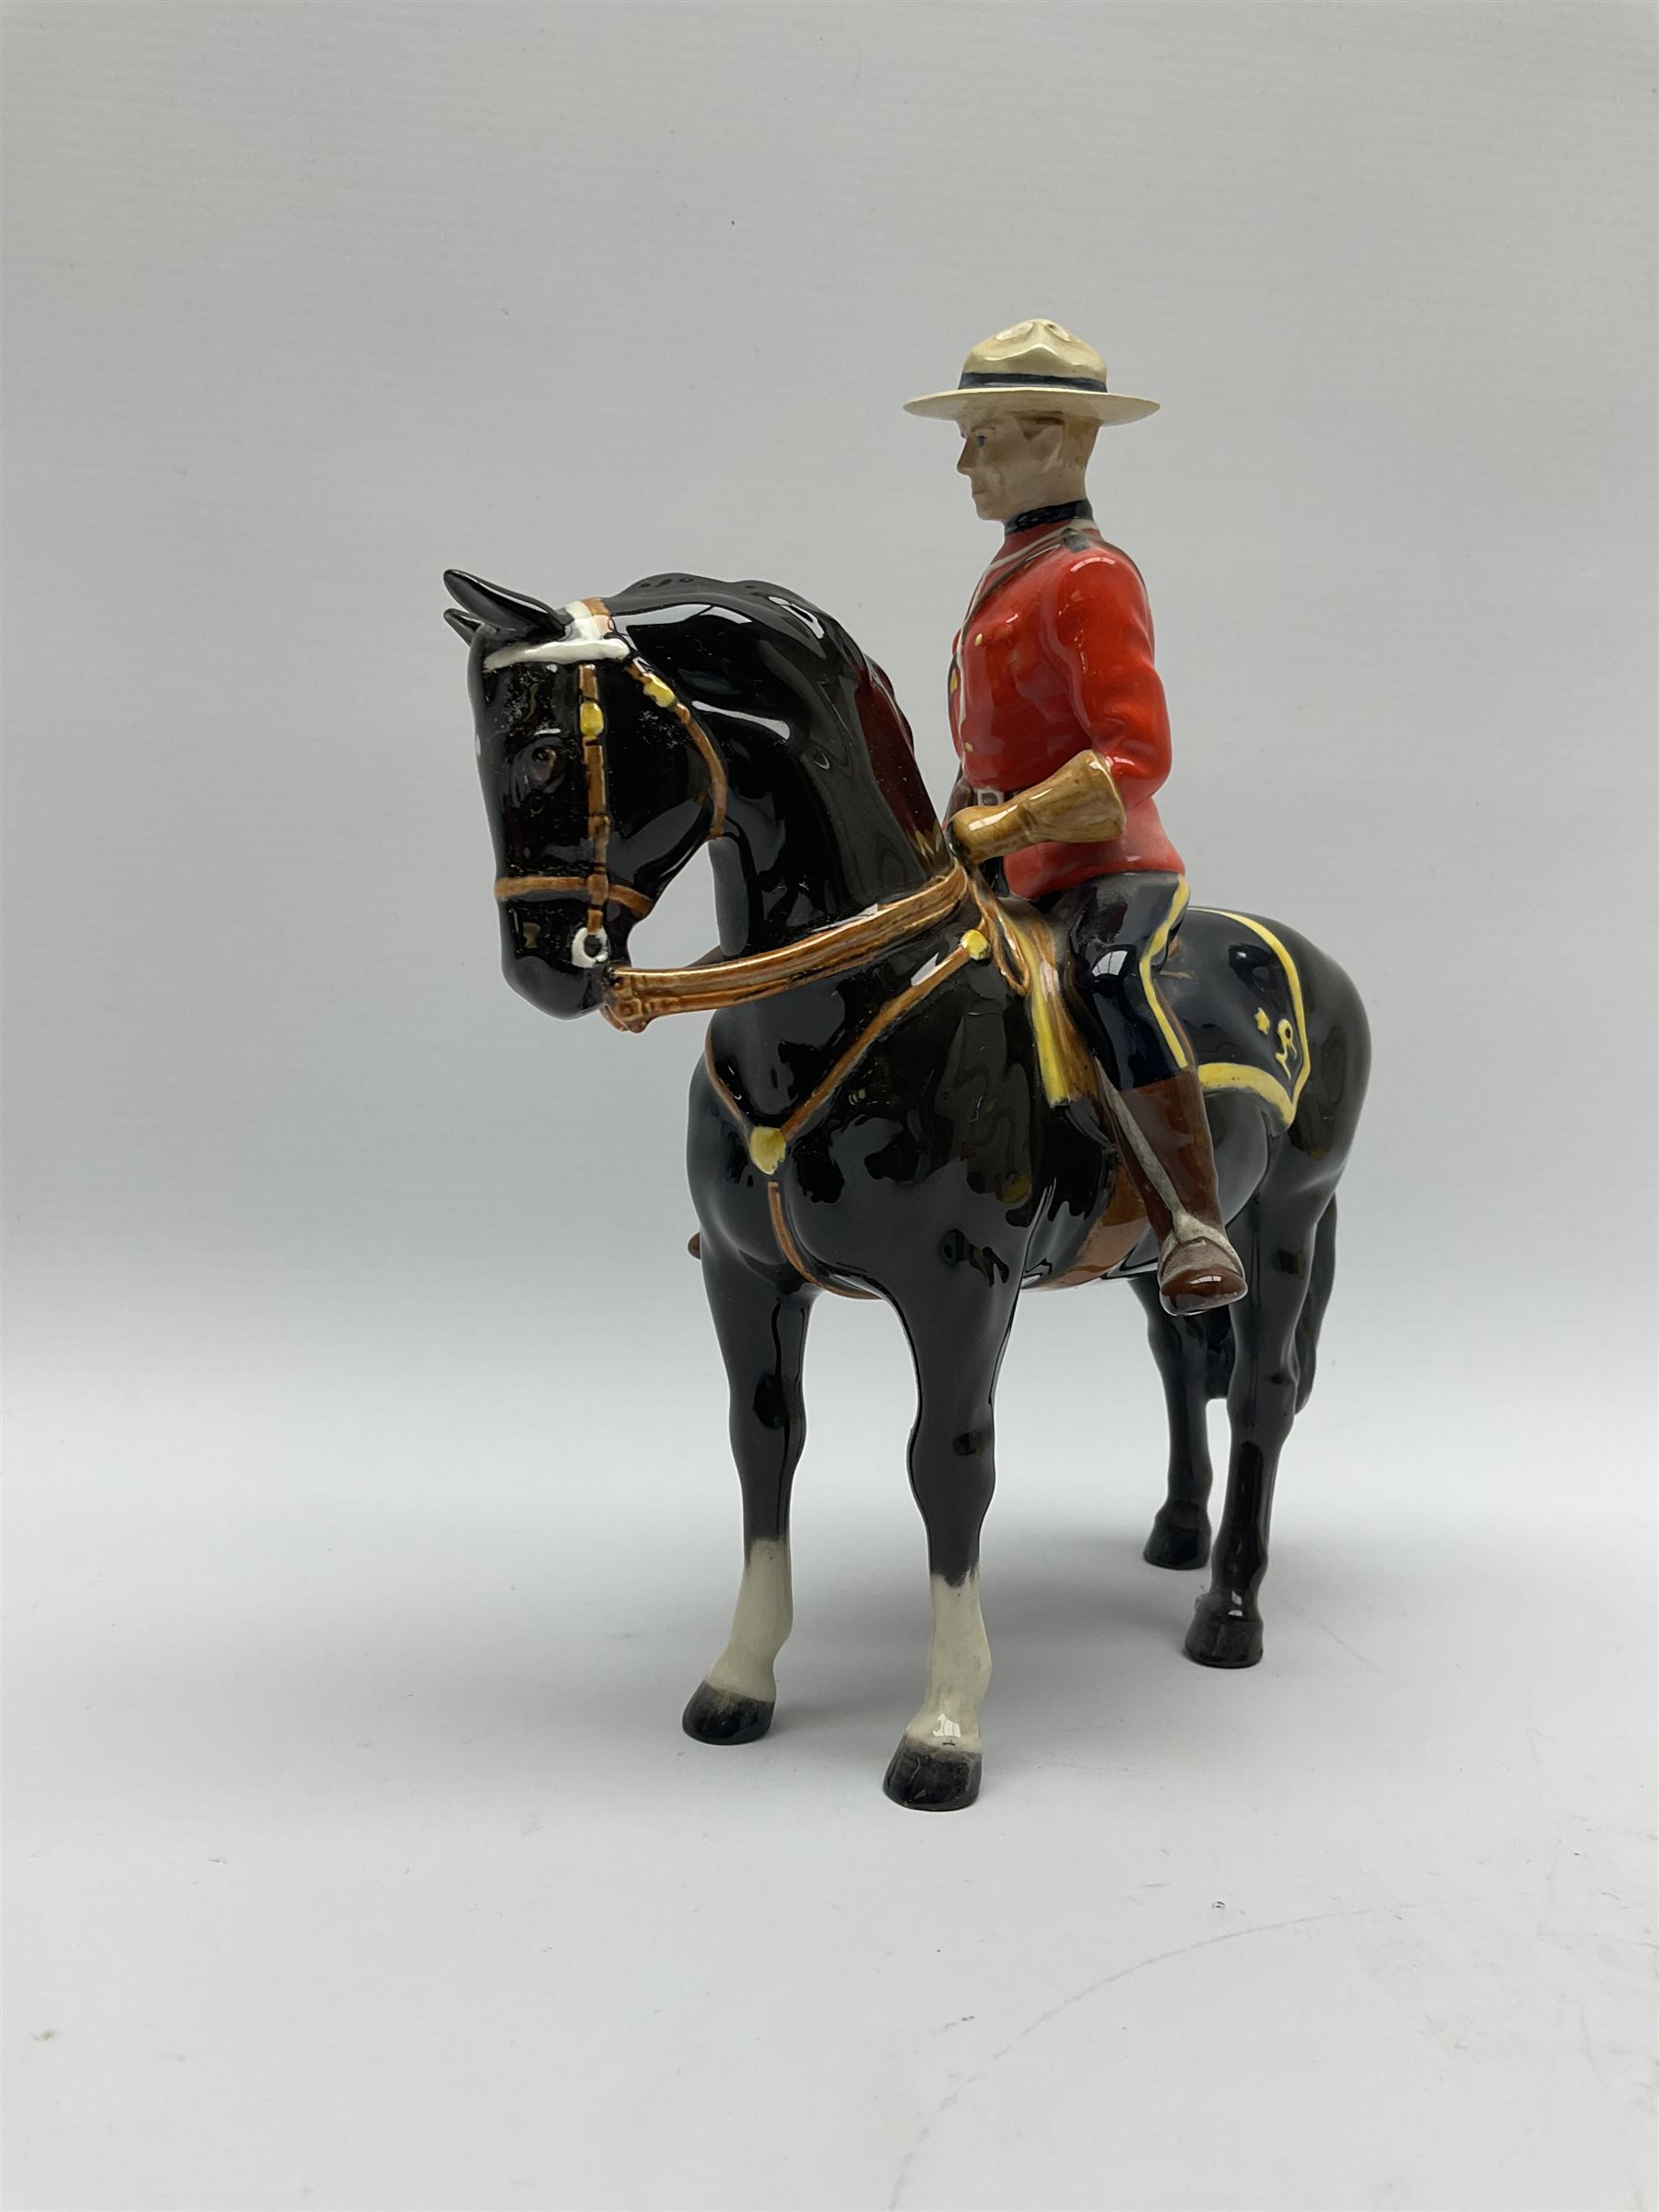 A model of a Canadian Mountie on horseback - Image 3 of 6